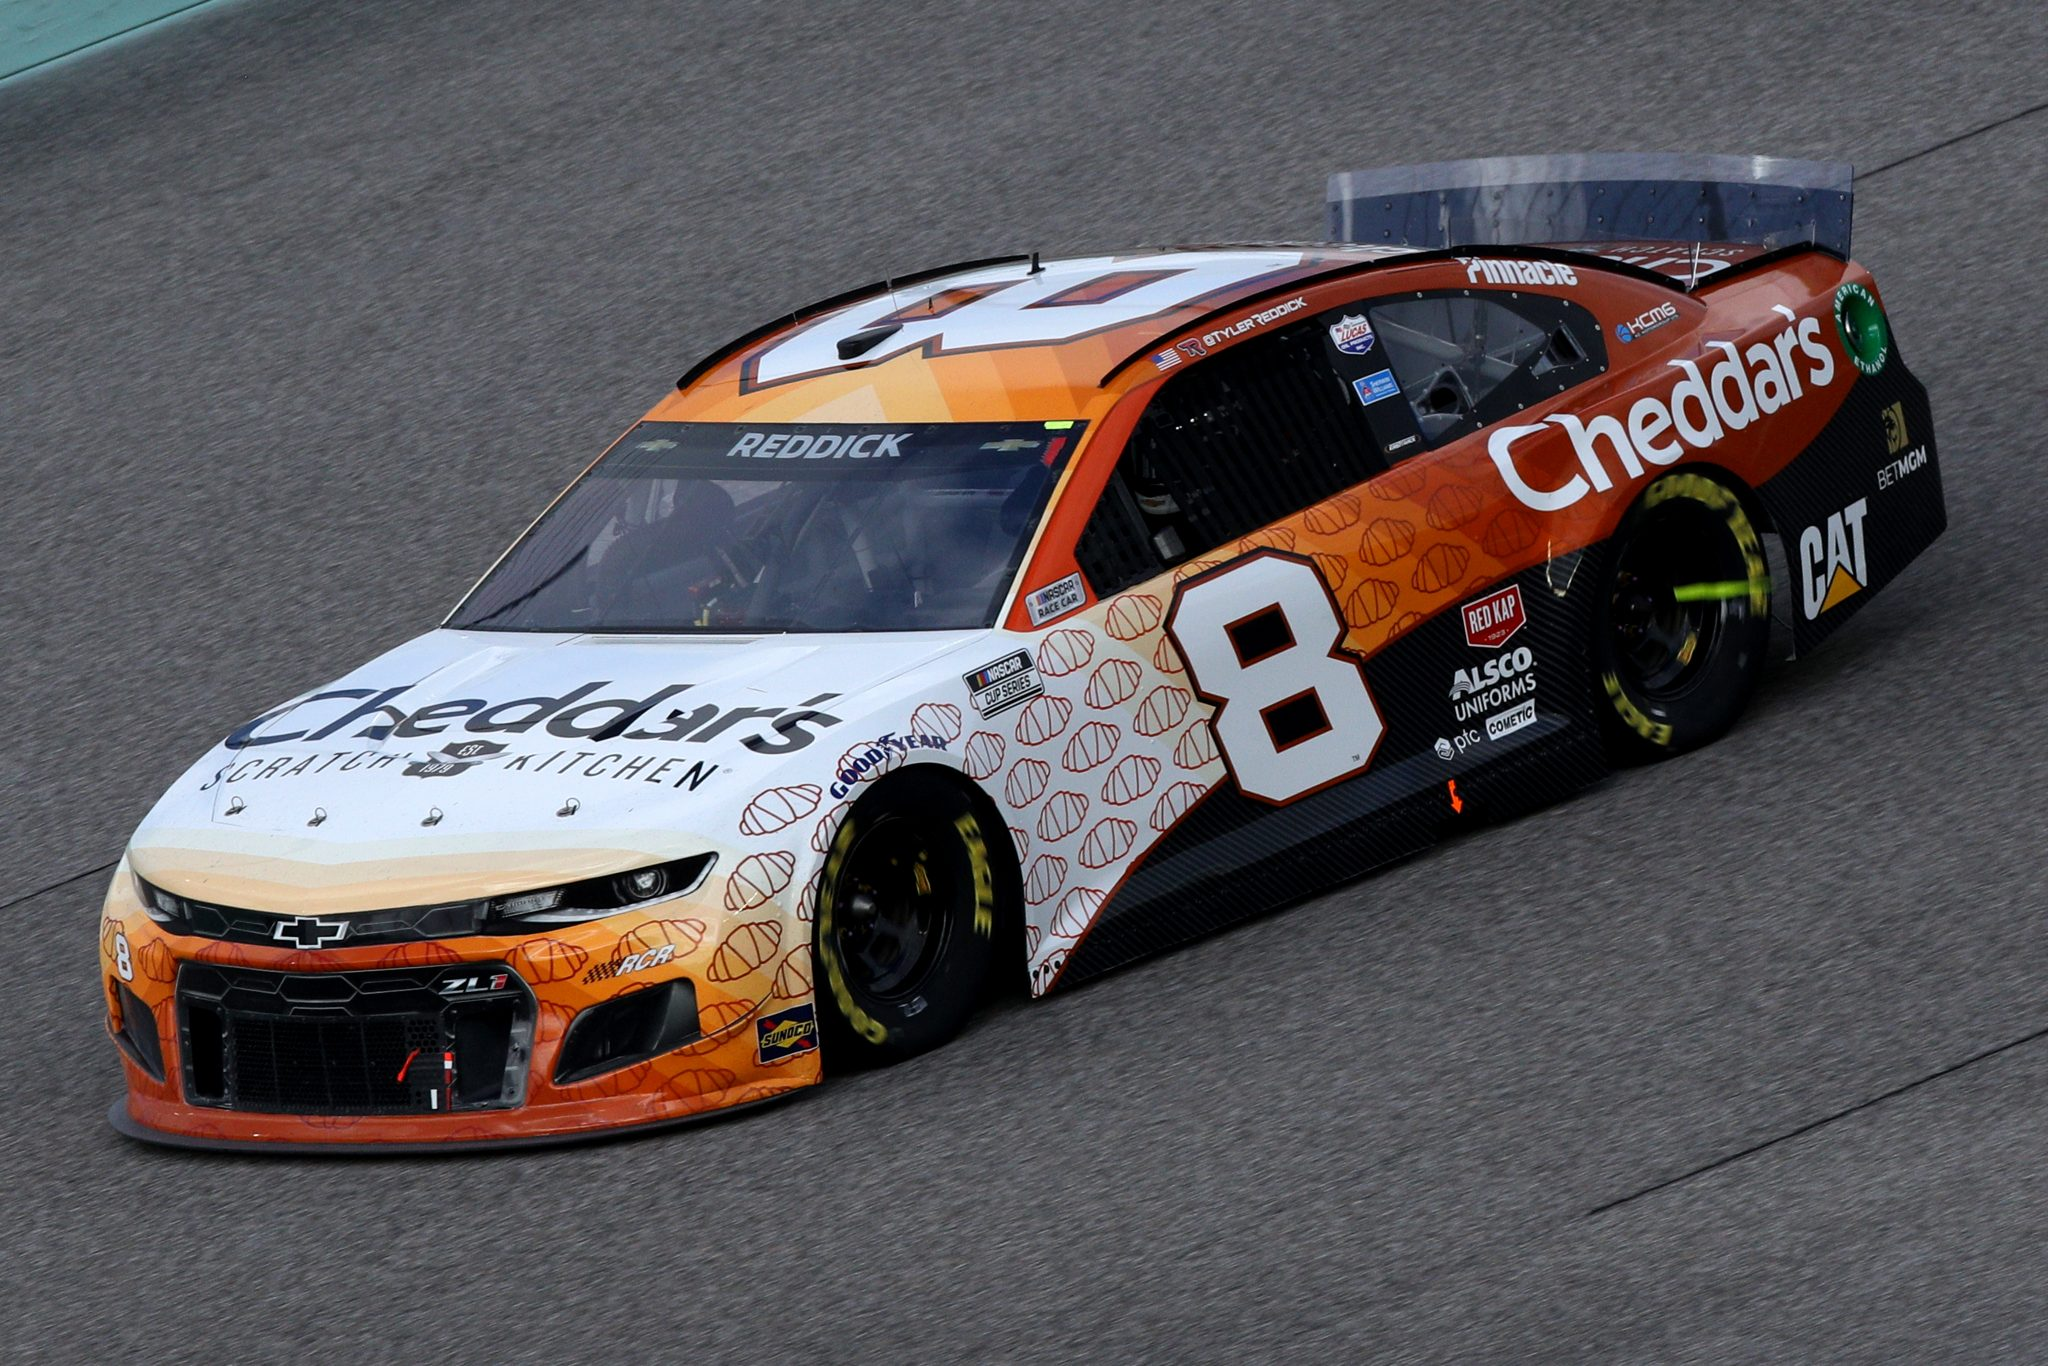 HOMESTEAD, FLORIDA - FEBRUARY 28: Tyler Reddick, driver of the #8 Cheddar's Scratch Kitchen Chevrolet, drives during the NASCAR Cup Series Dixie Vodka 400 at Homestead-Miami Speedway on February 28, 2021 in Homestead, Florida. (Photo by Sean Gardner/Getty Images) | Getty Images